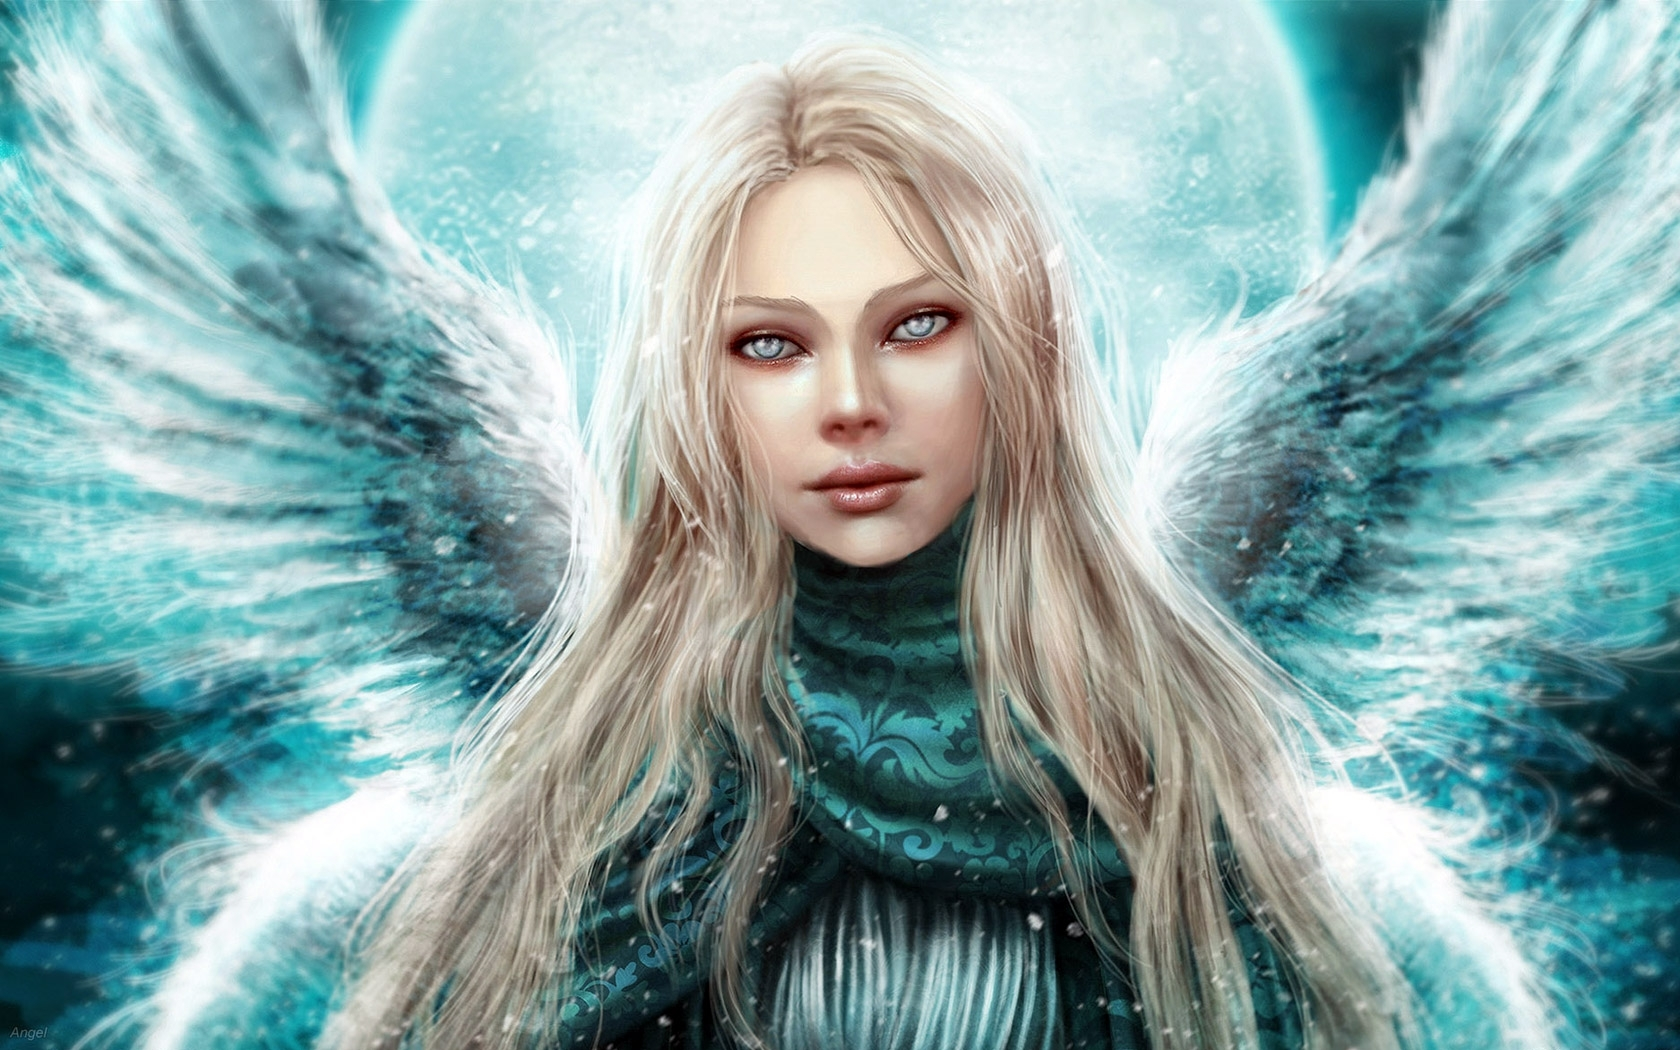 39144 download wallpaper Girls, Fantasy screensavers and pictures for free